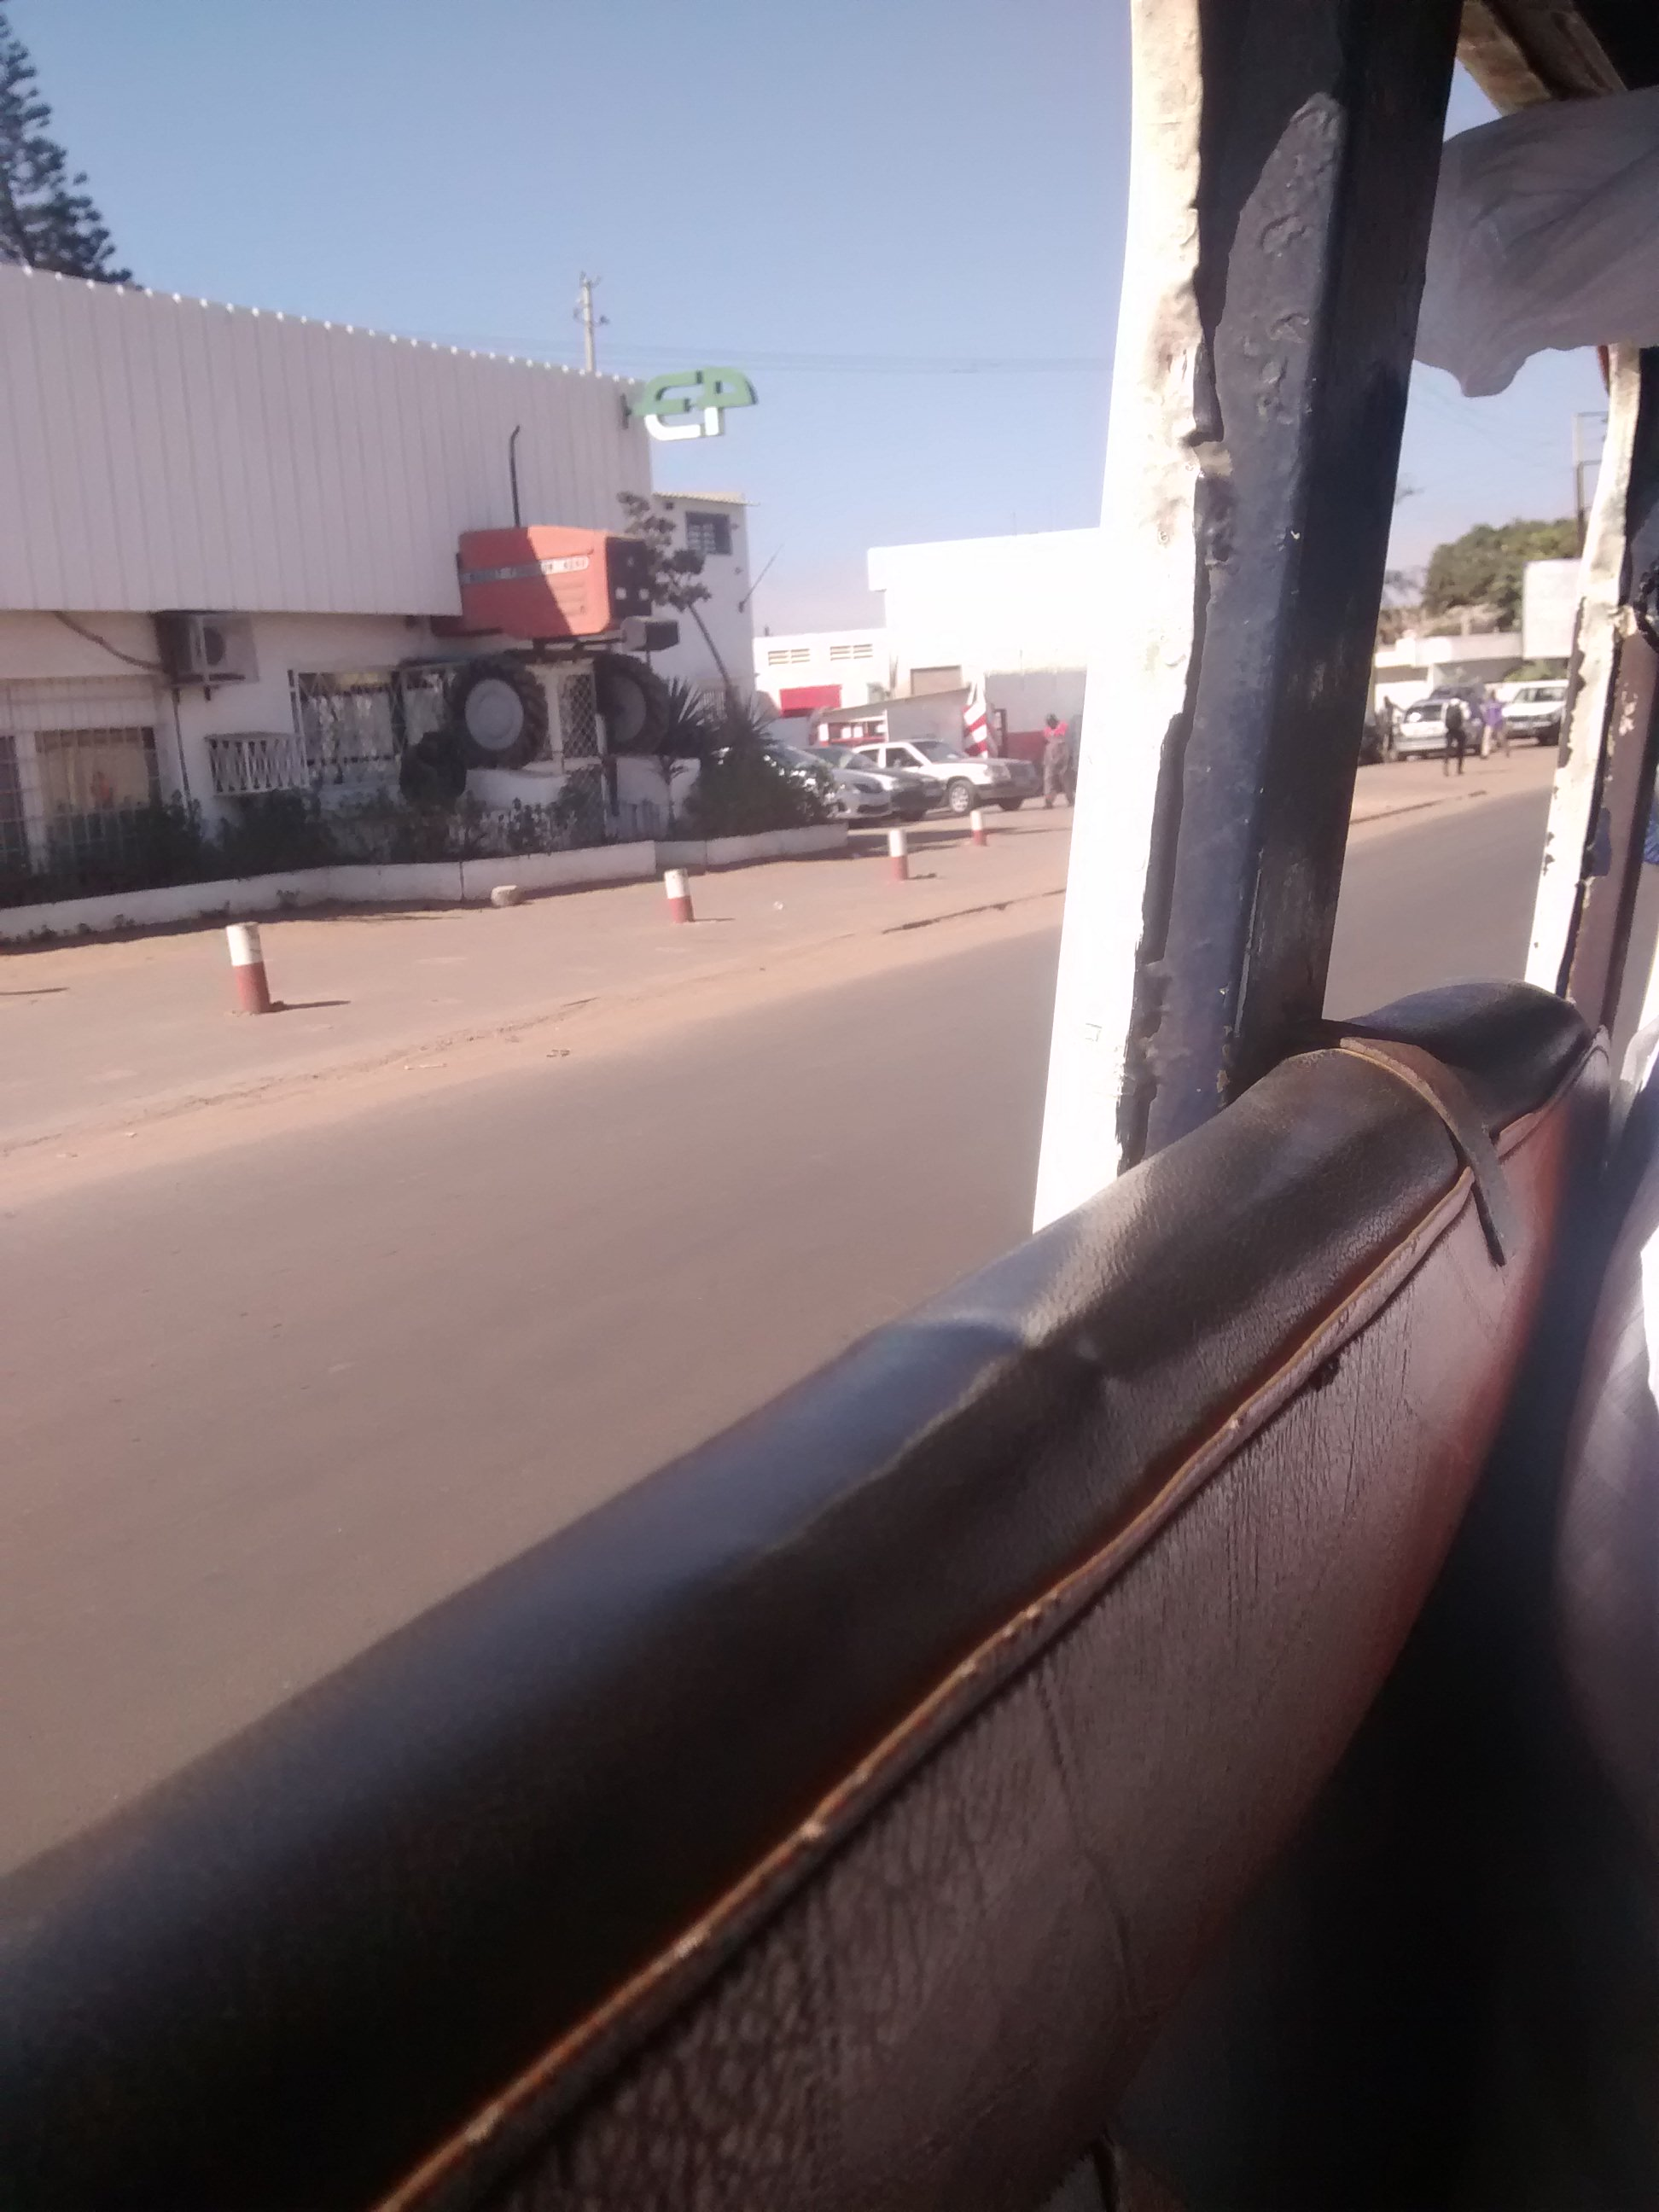 Travelling on local bus in Dakar, Senegal.